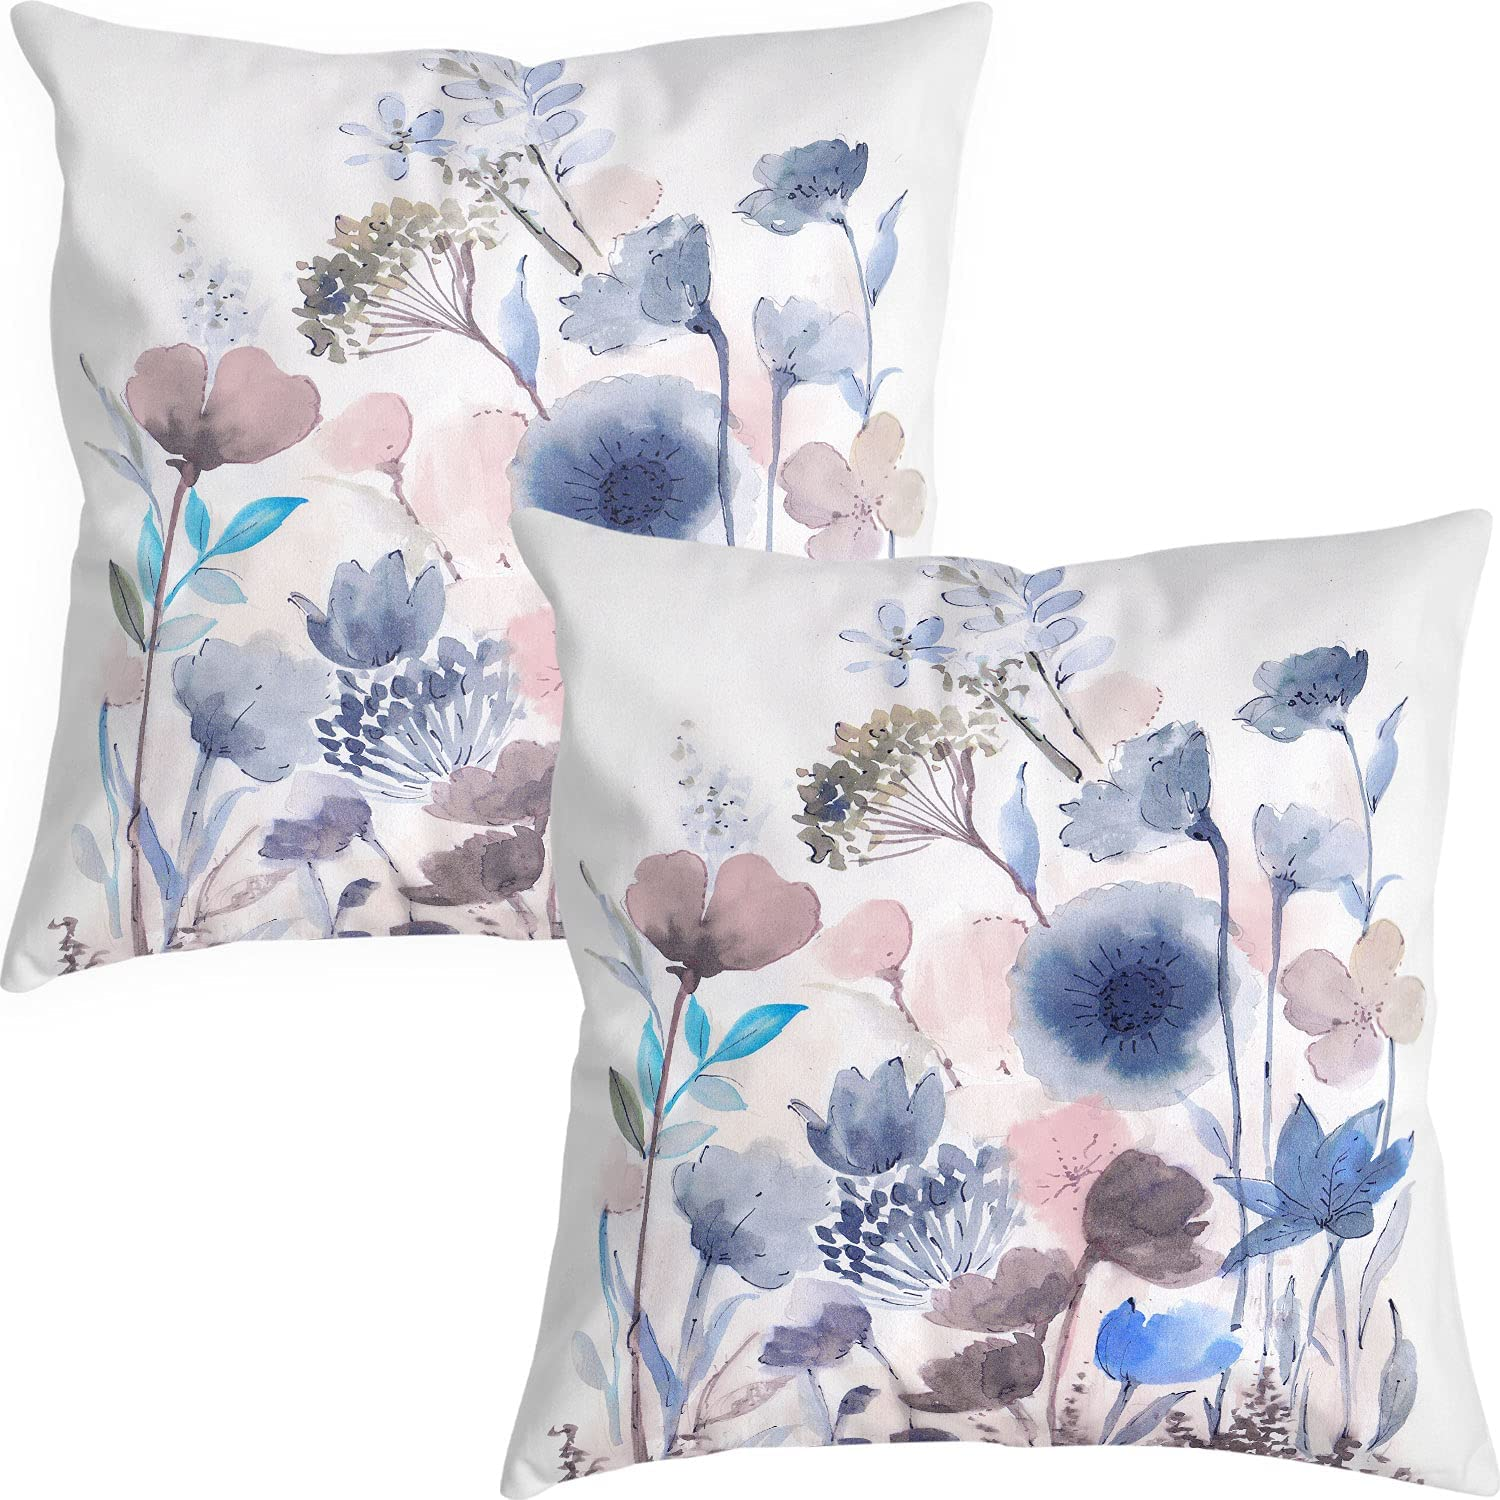 Decorative Flower OFFicial store Throw Pillow Covers x Floral 18 Super-cheap Pillows